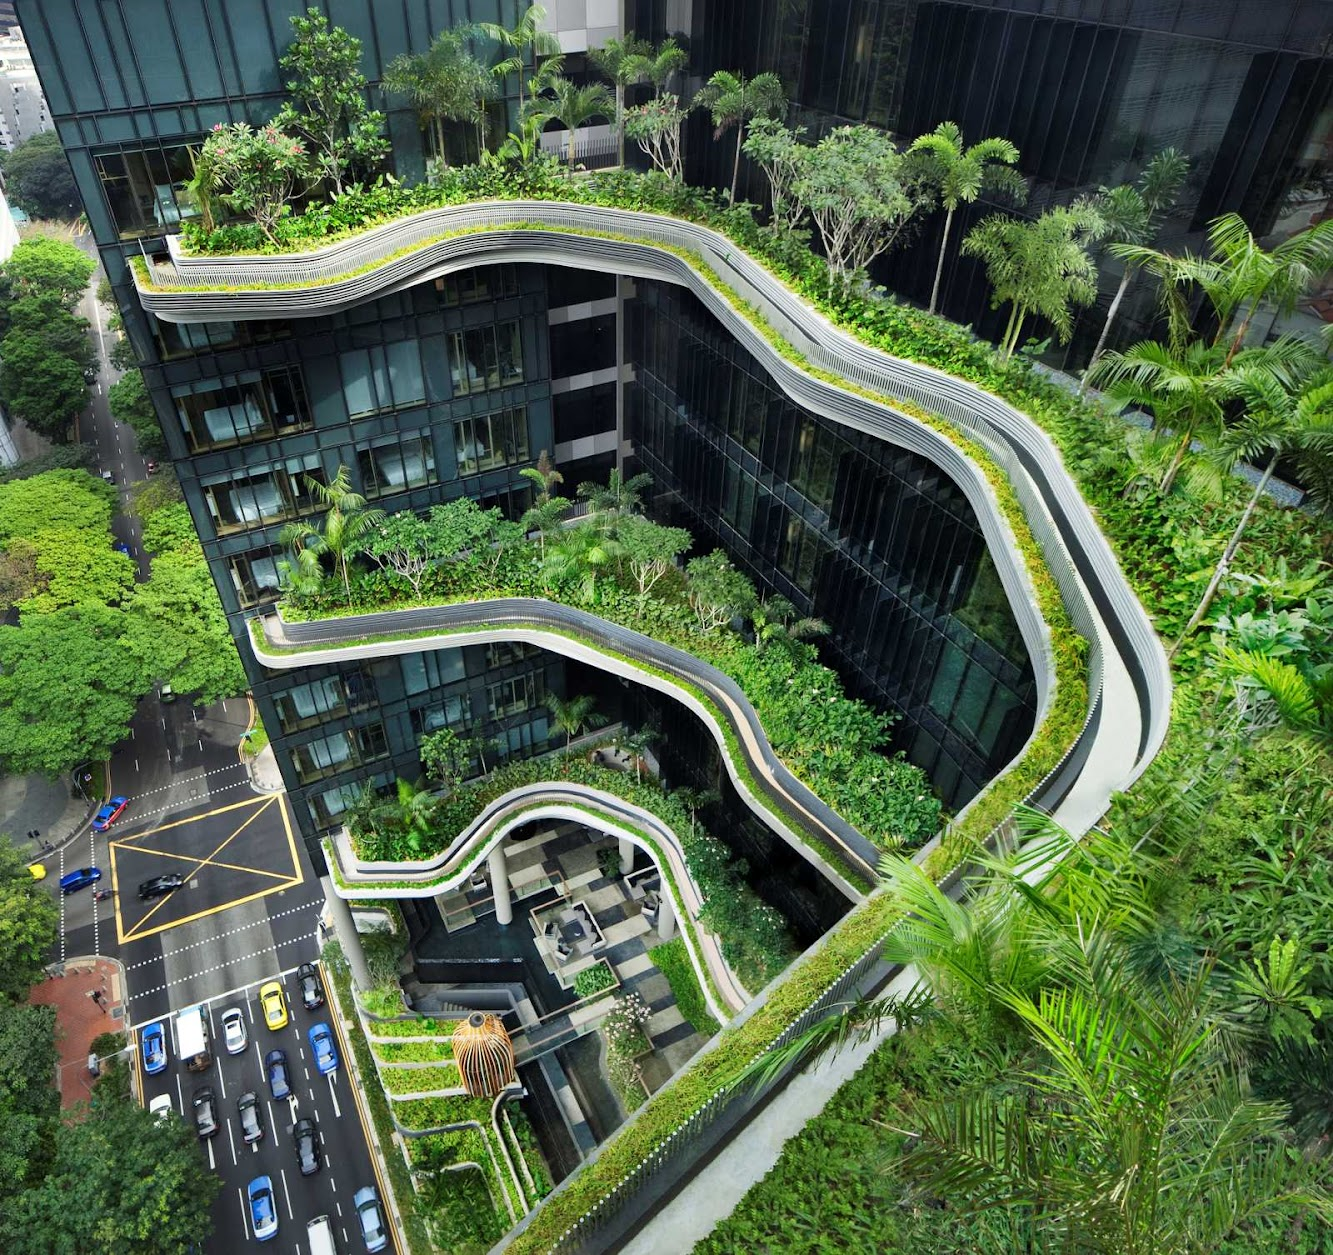 Singapore: Parkroyal On Pickering by Woha